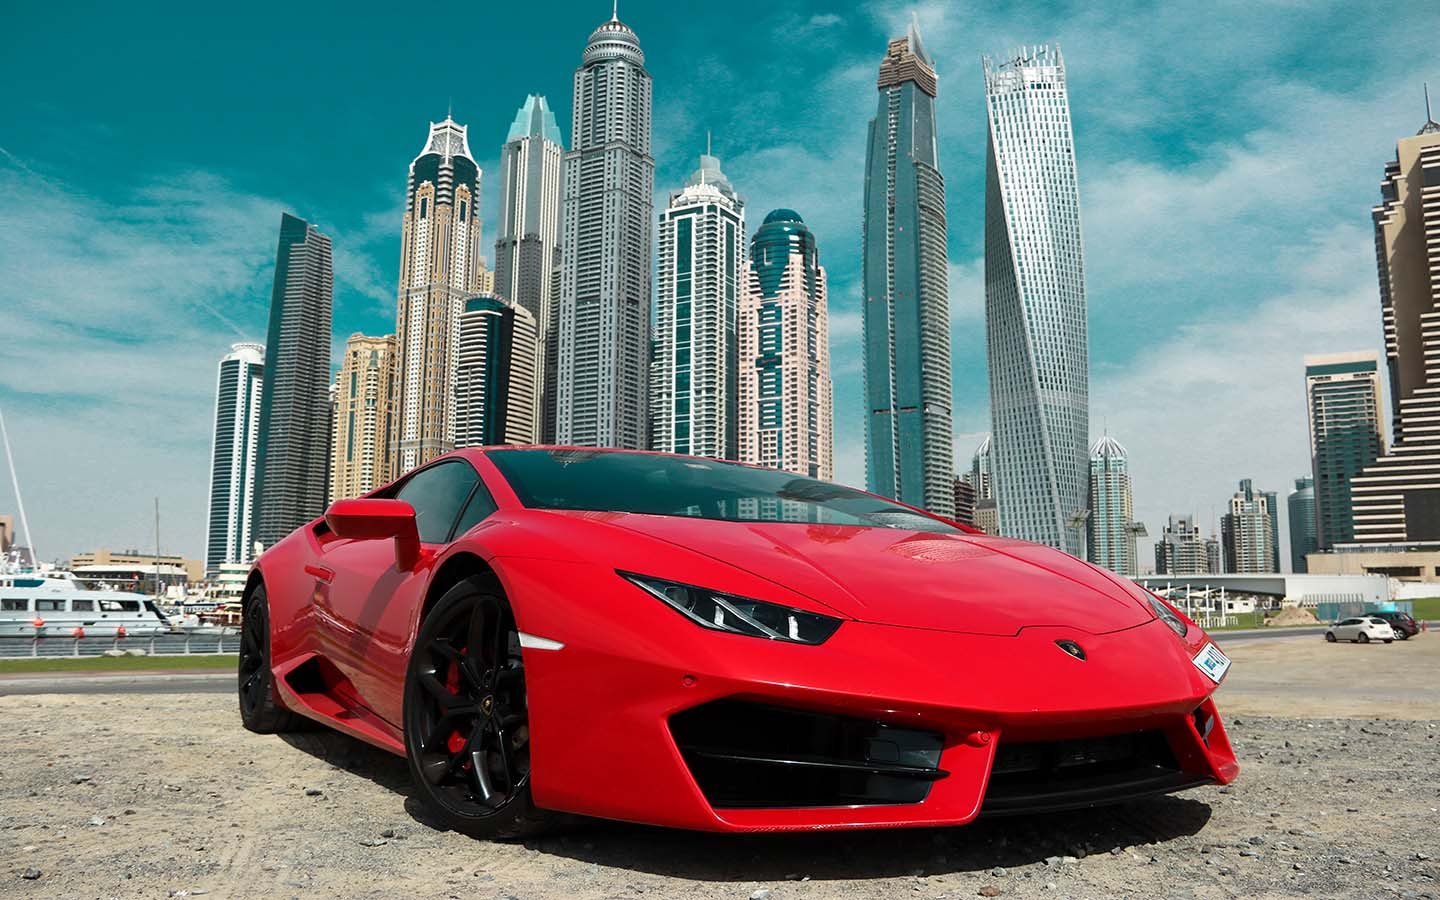 A reliable rent a car company should be hired for better travel experience.